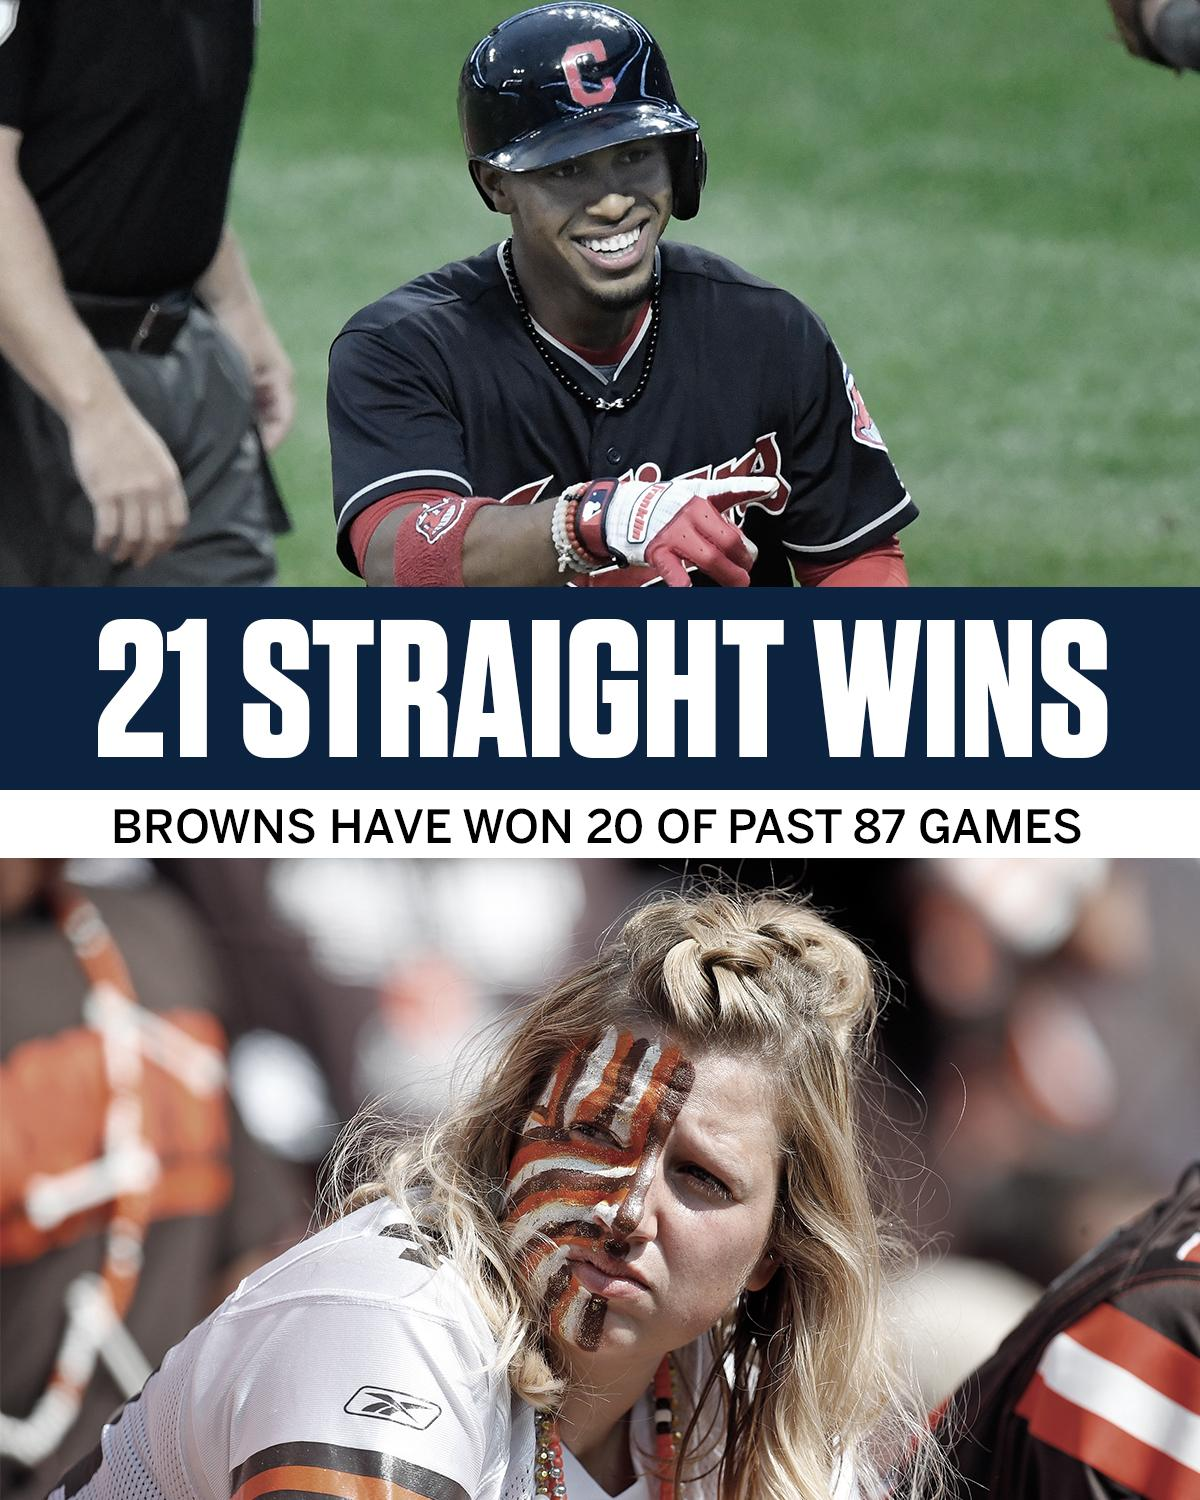 The Indians have more wins in the past few weeks than the Browns have in the past 5+ years. https://t.co/gy0hmyIp1r